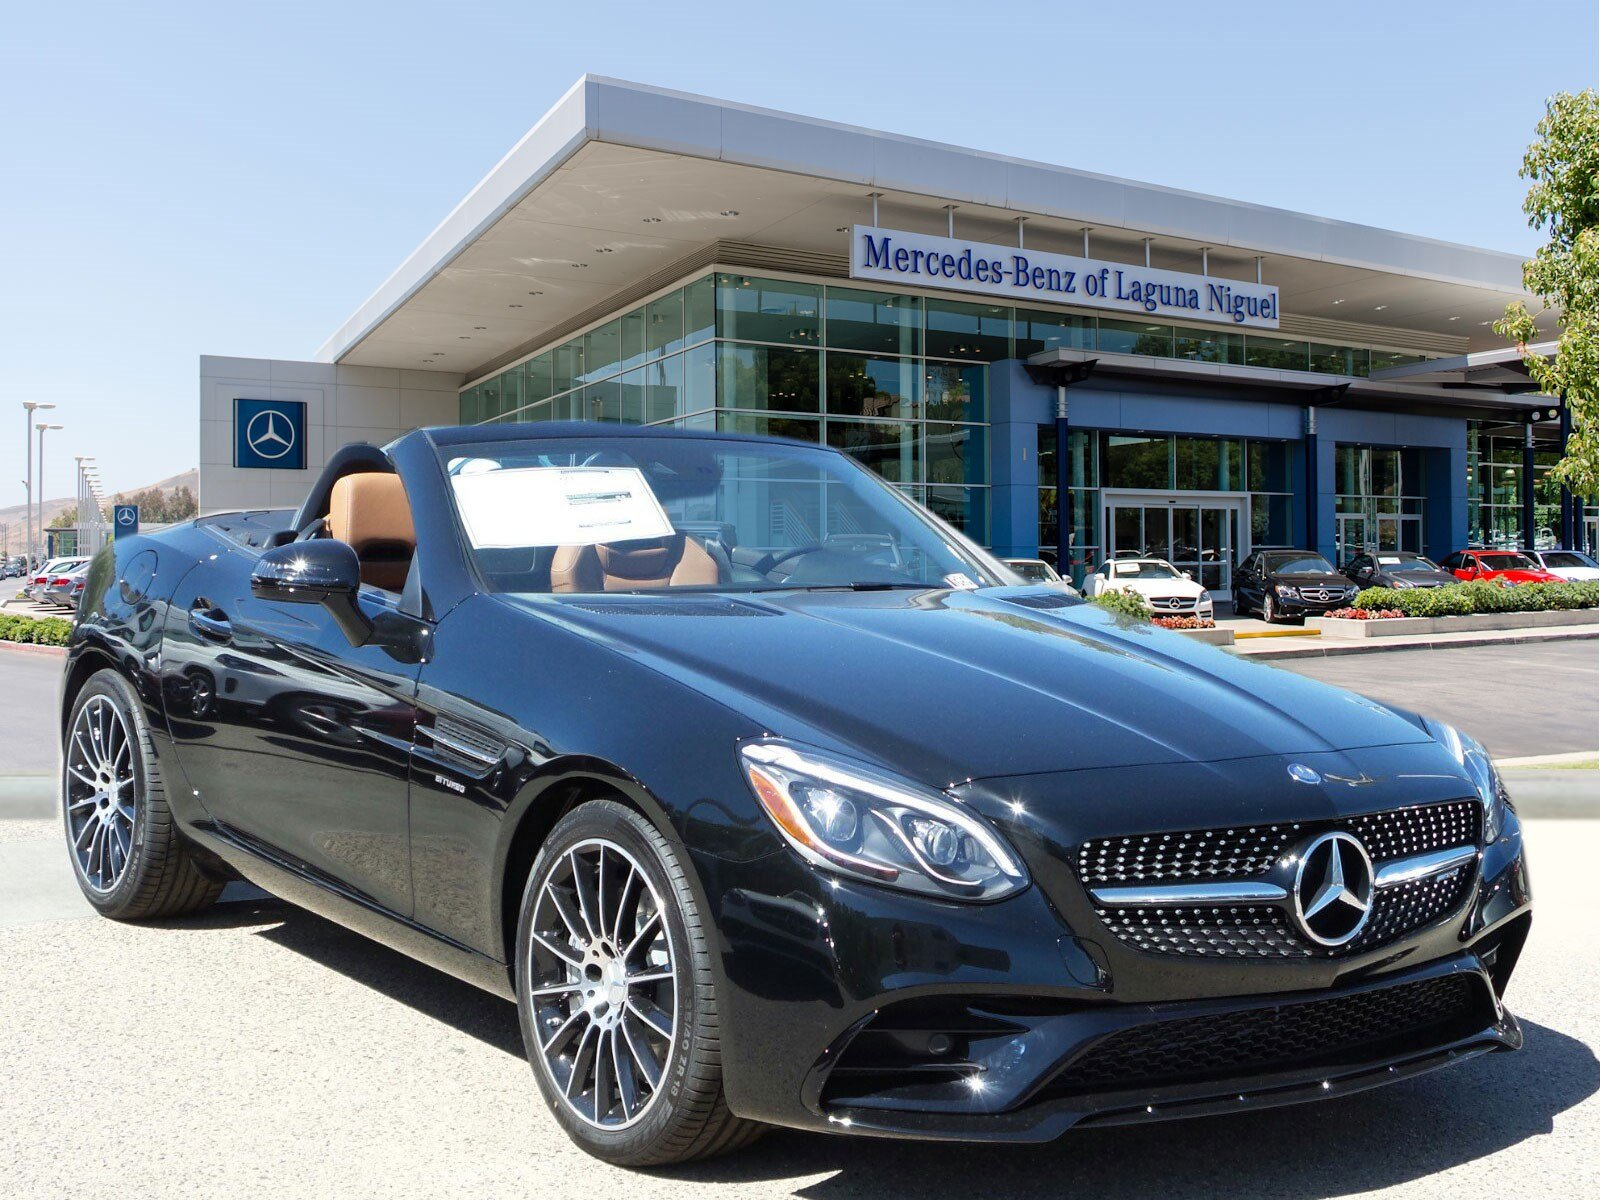 New 2017 mercedes benz slc amg slc43 roadster in laguna for 2017 mercedes benz winter event